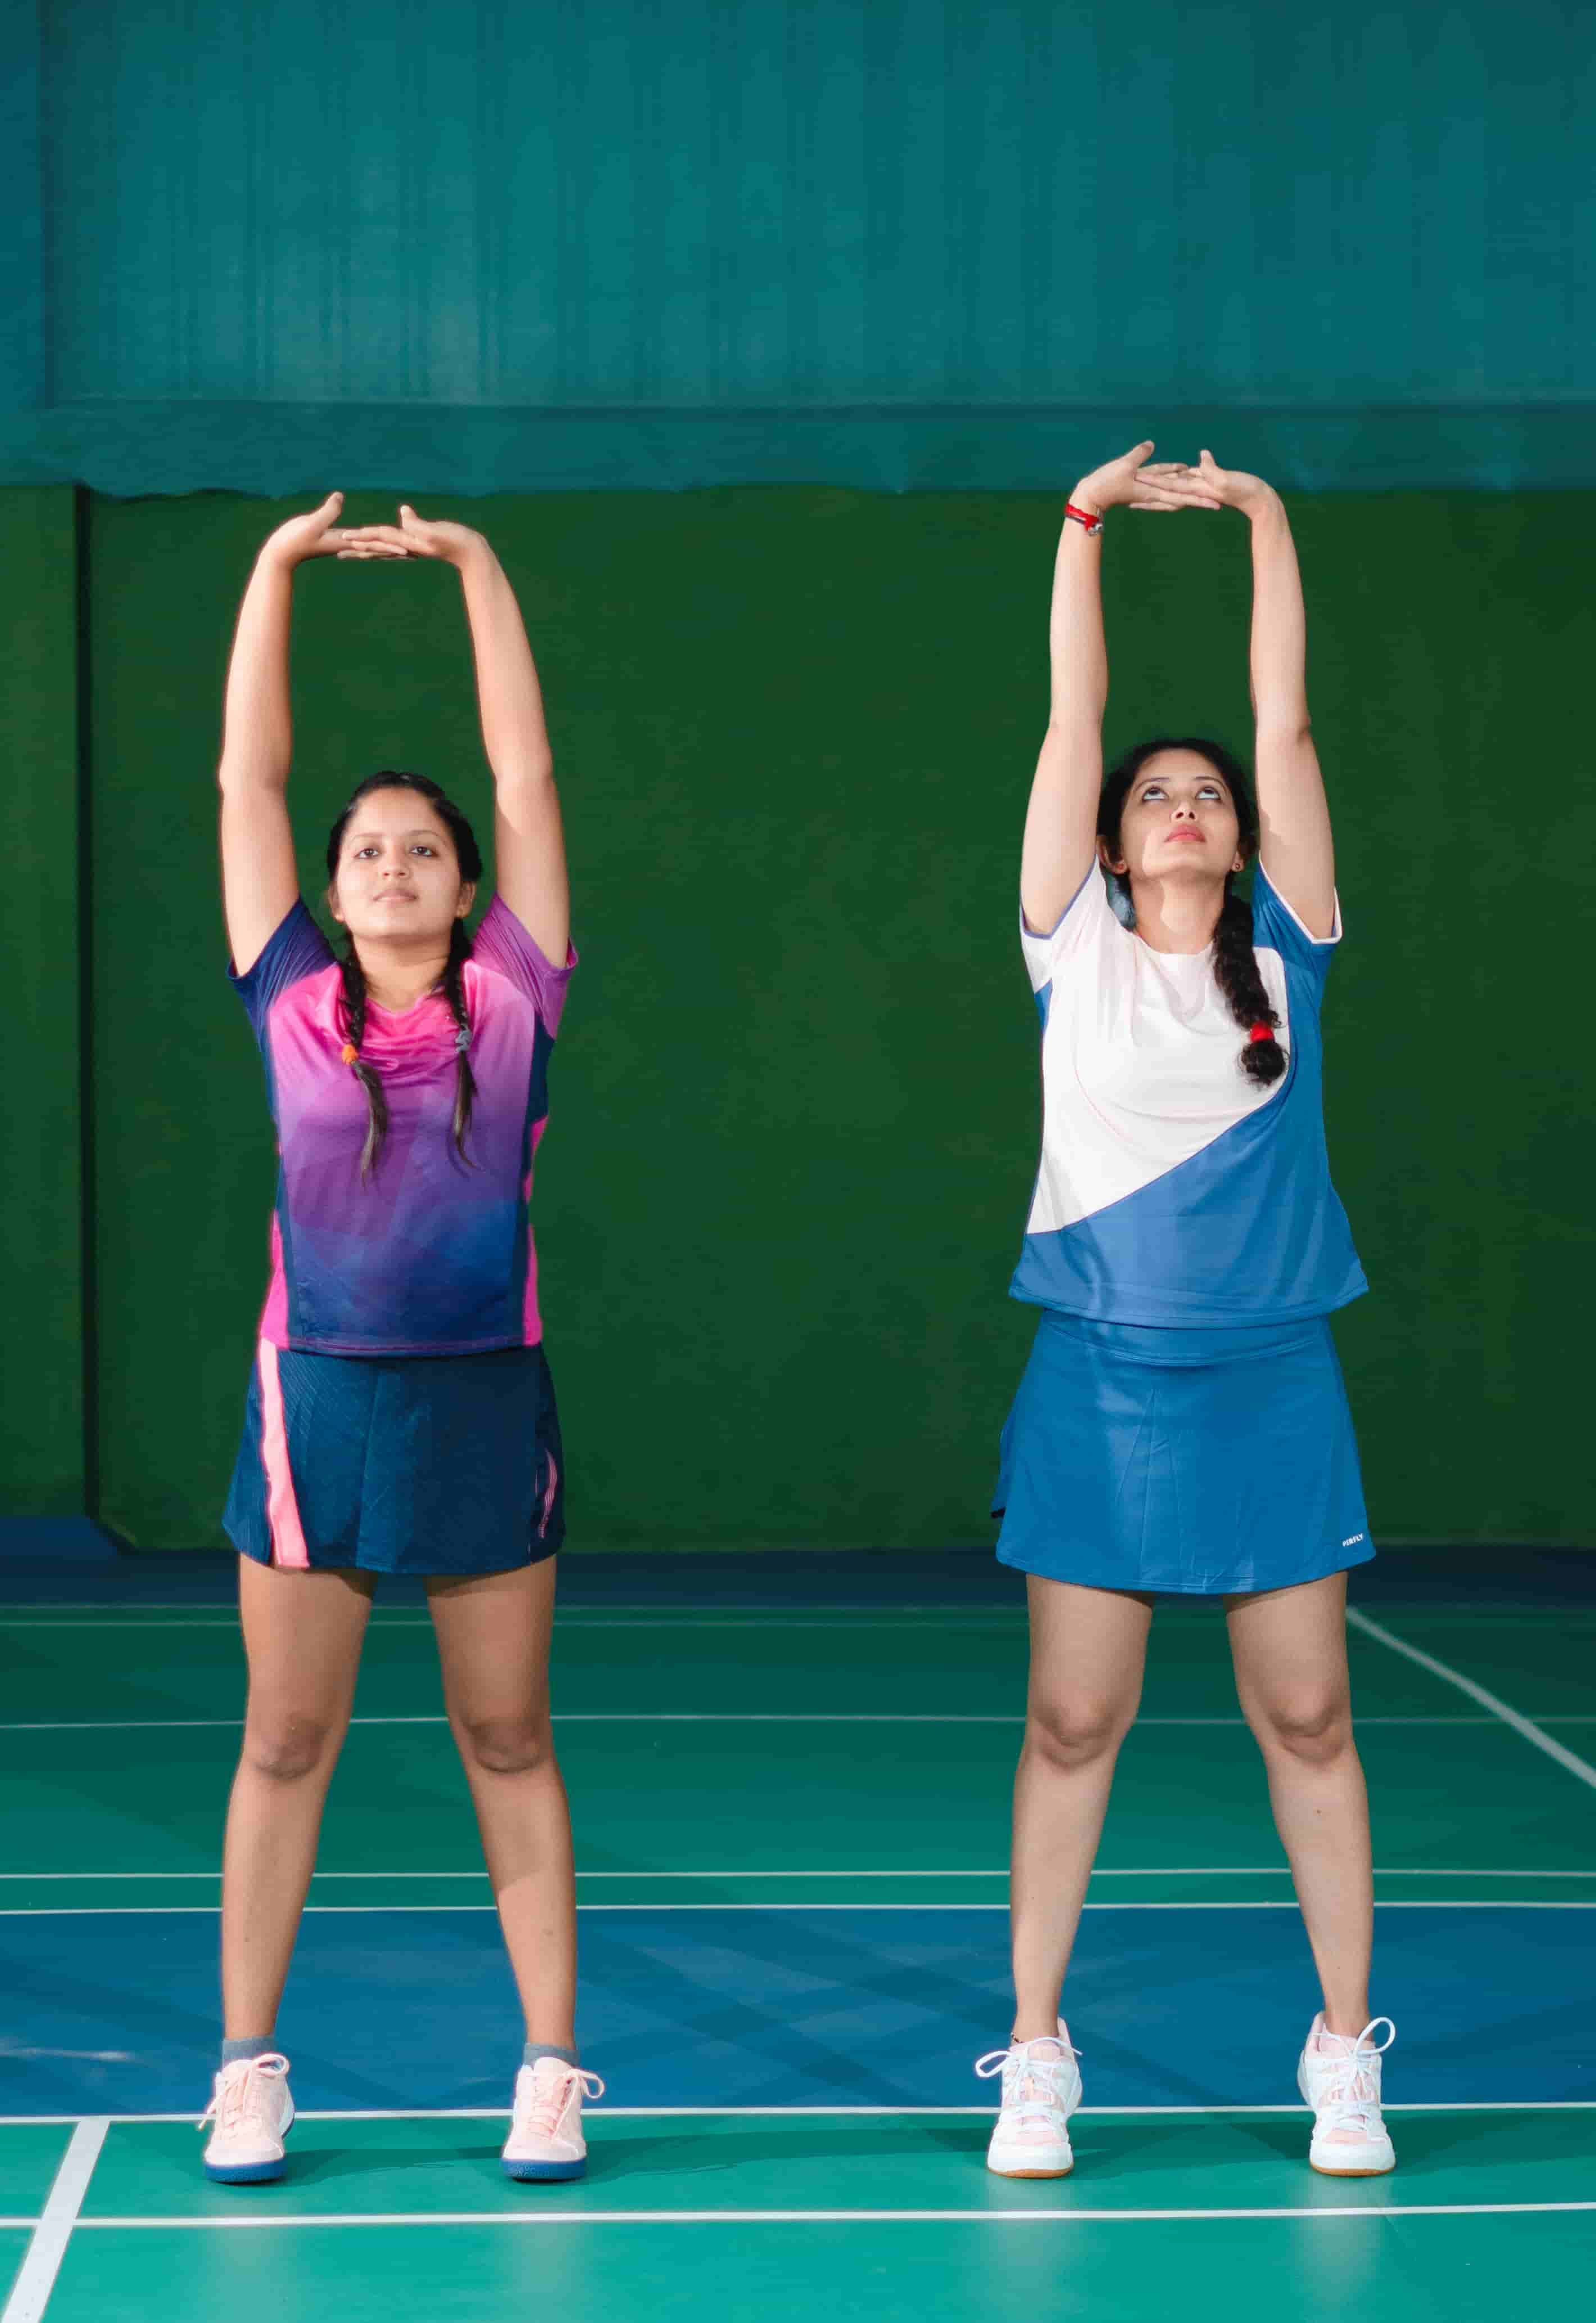 6 Best stretches to do after badminton workout - Blog Decathlon